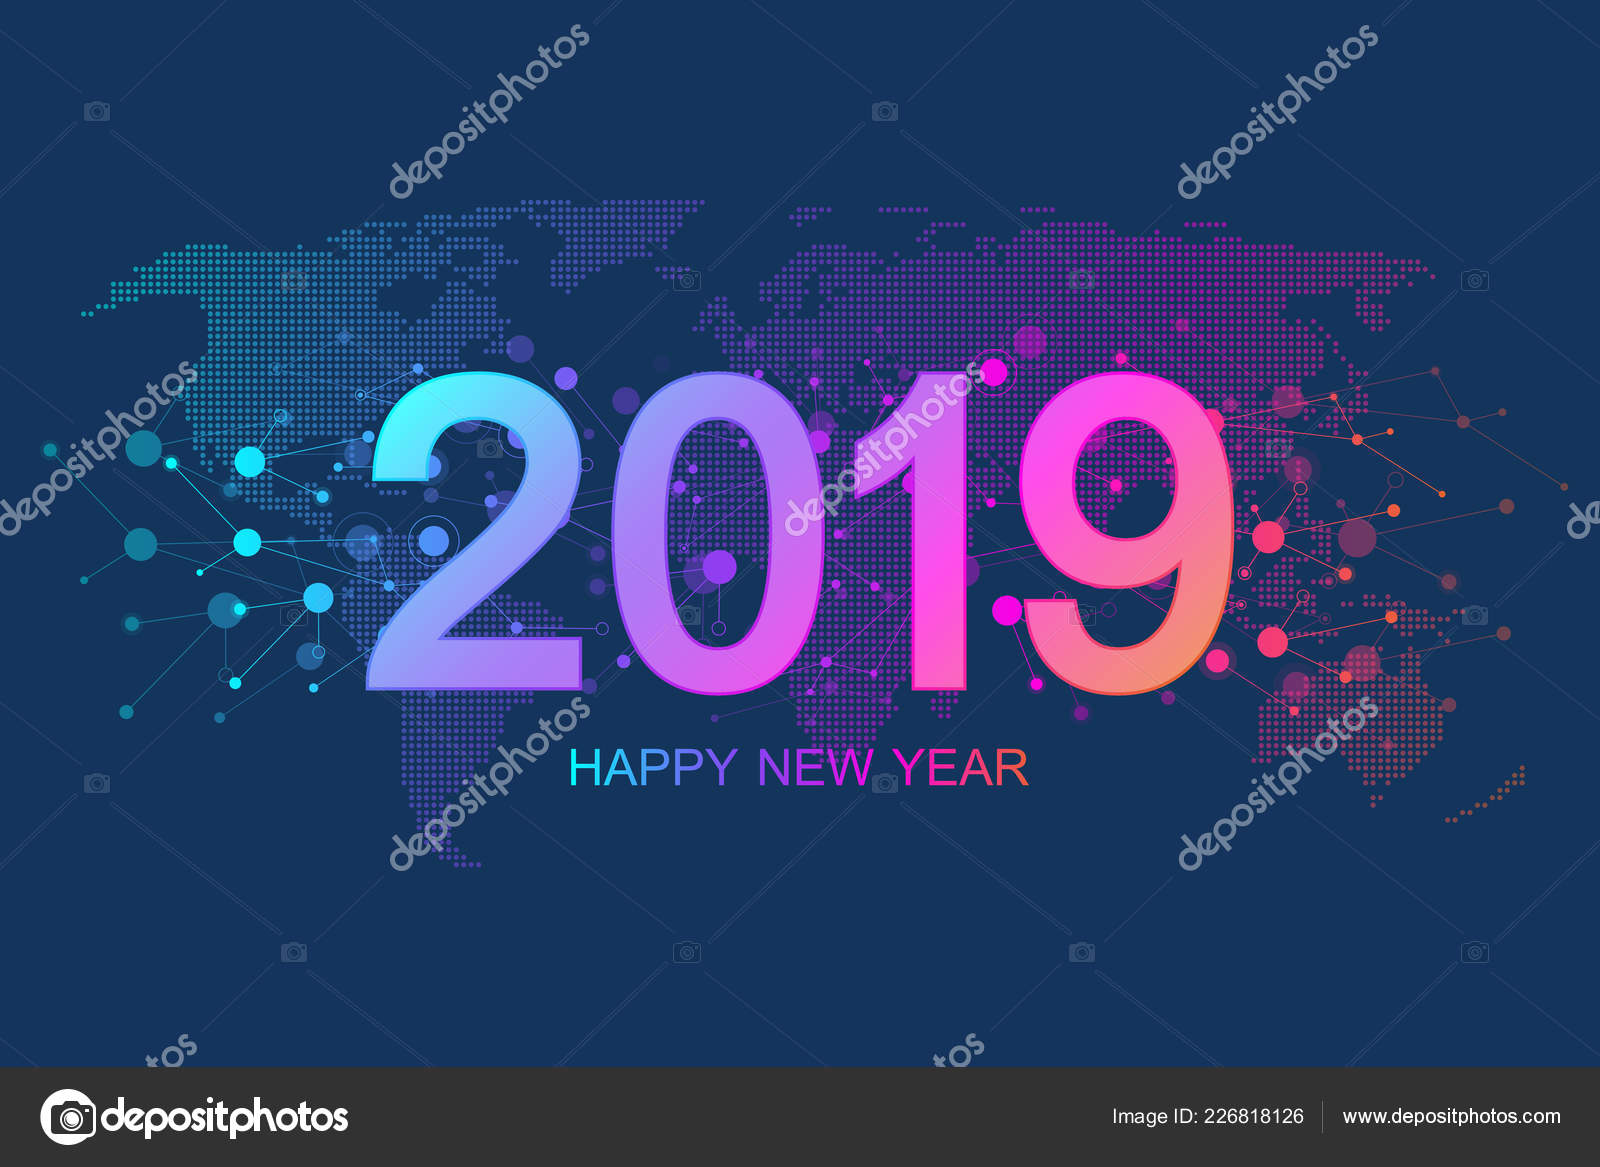 merry christmas and happy new year 2019 greeting card modern futuristic template for 2019 digital data visualization business technology concept